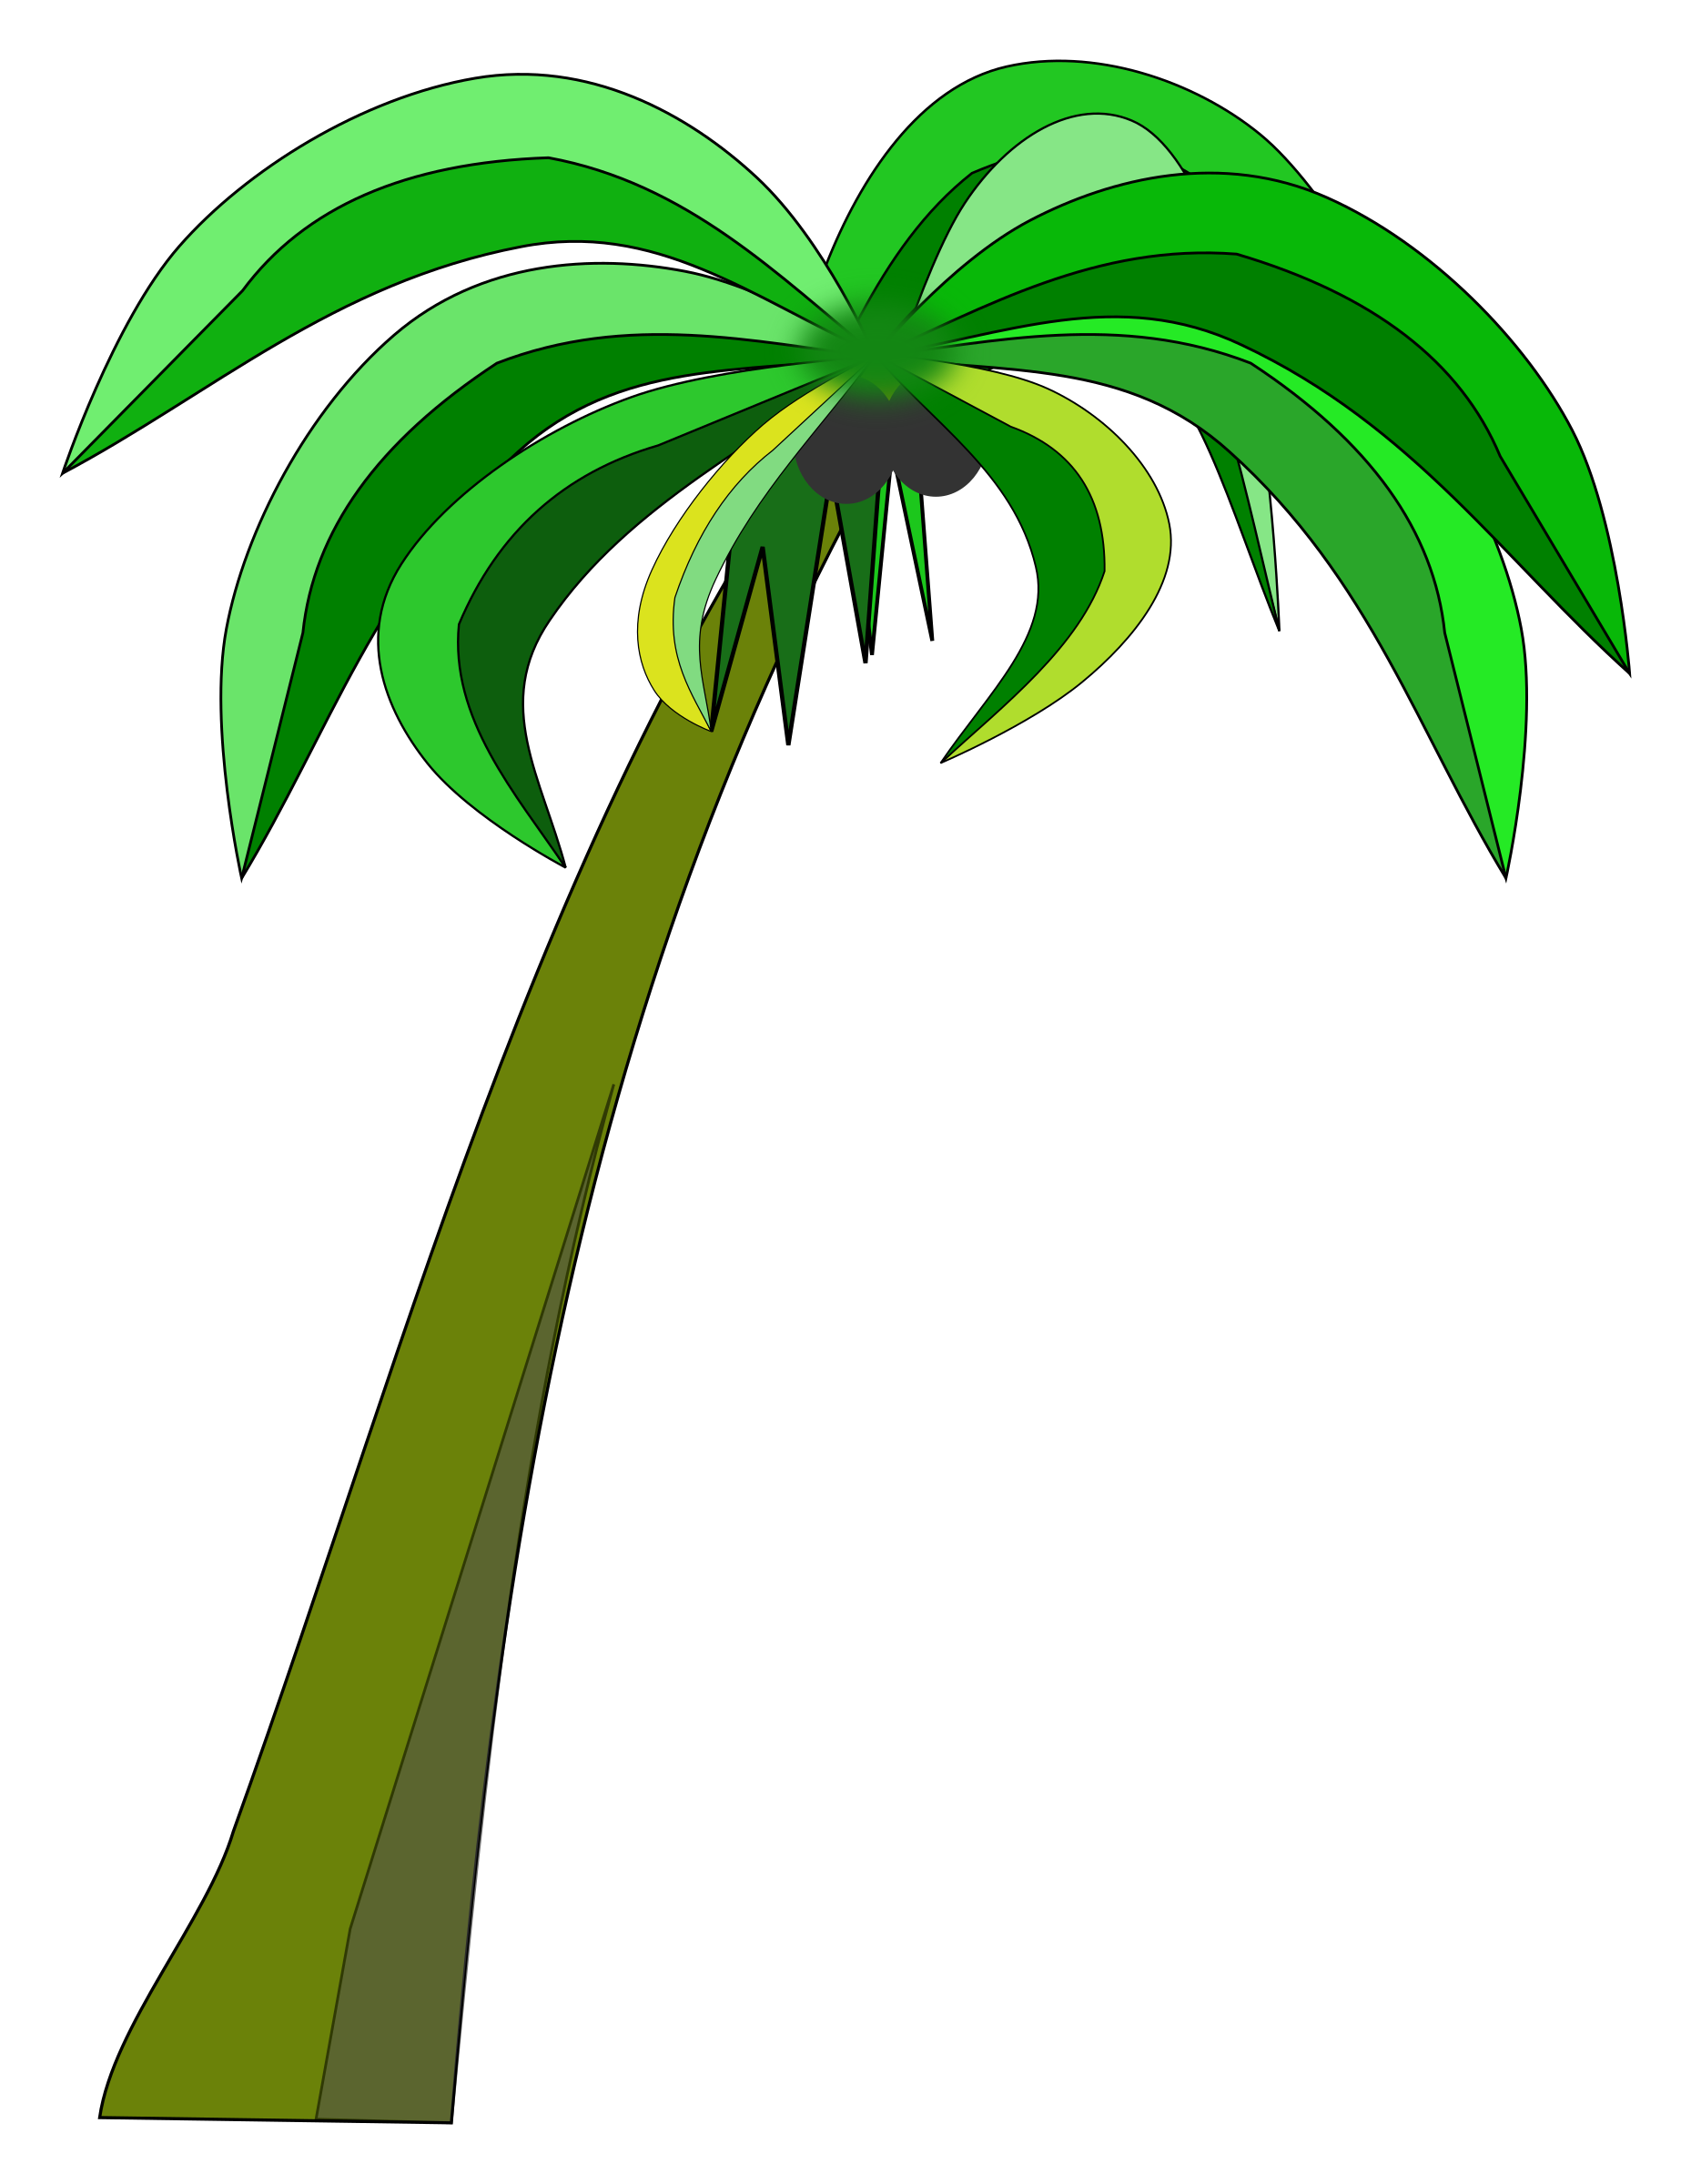 Coconut tree vector png. Palm or icons free